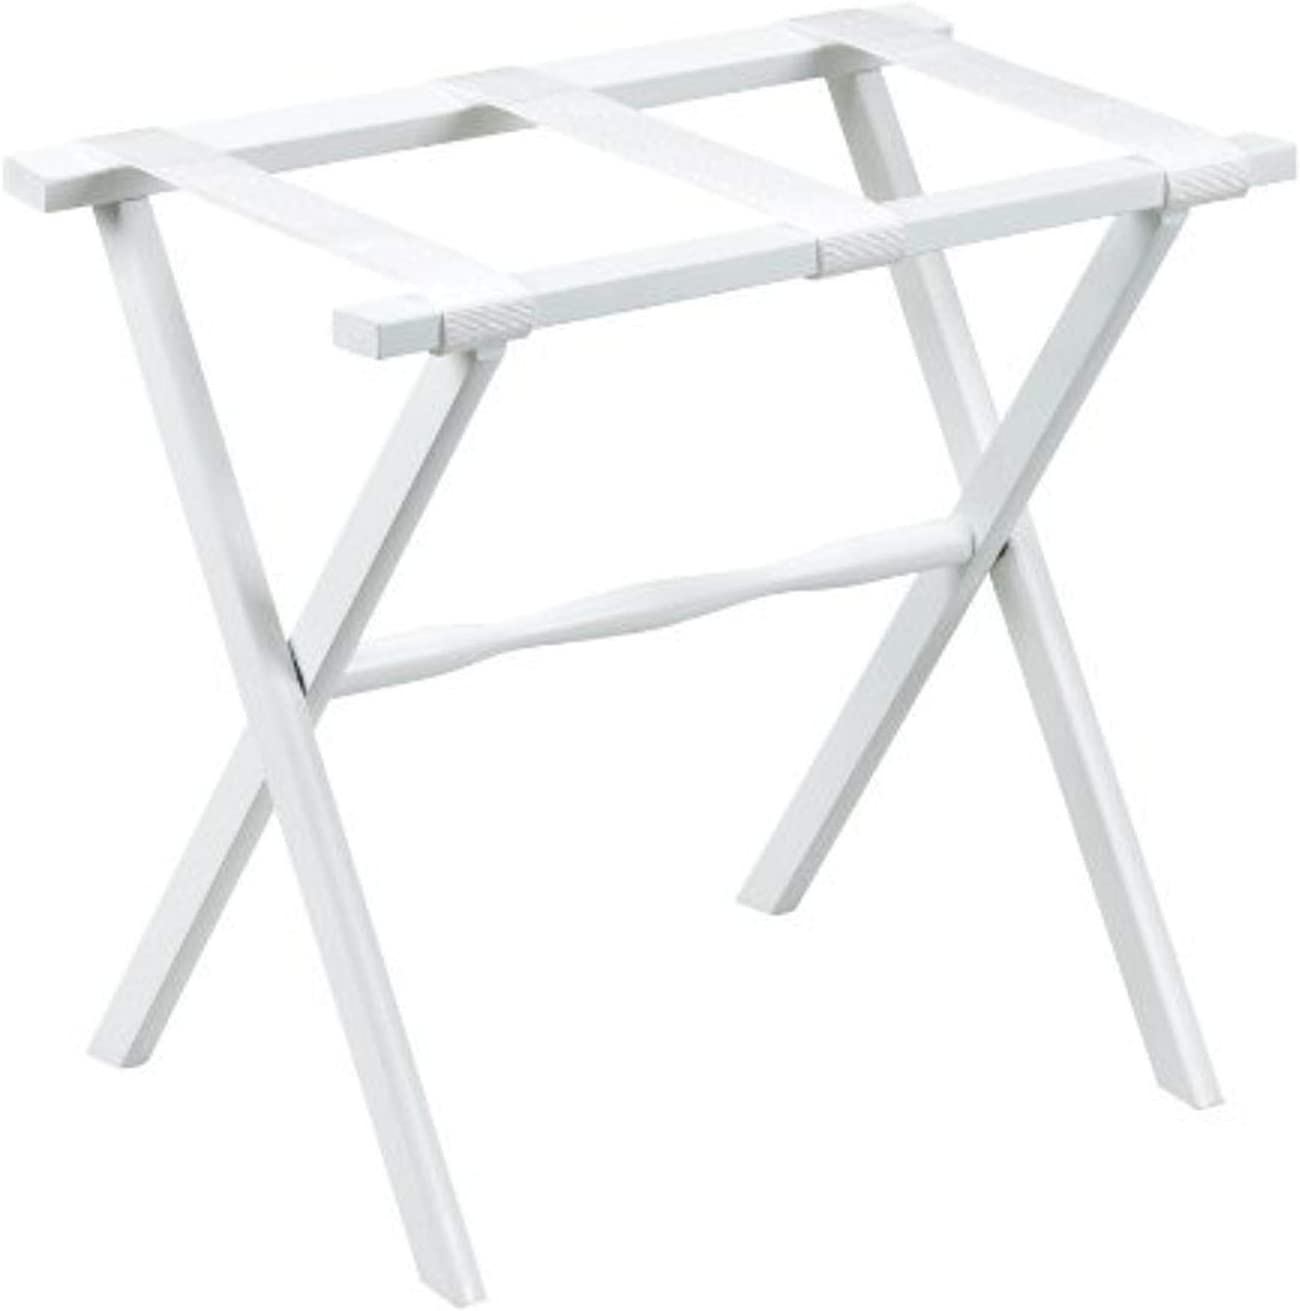 Gate House Furniture Item White Straight Leg Luggage Rack with 3 White Nylon Straps 23 by 13 by 20-Inch